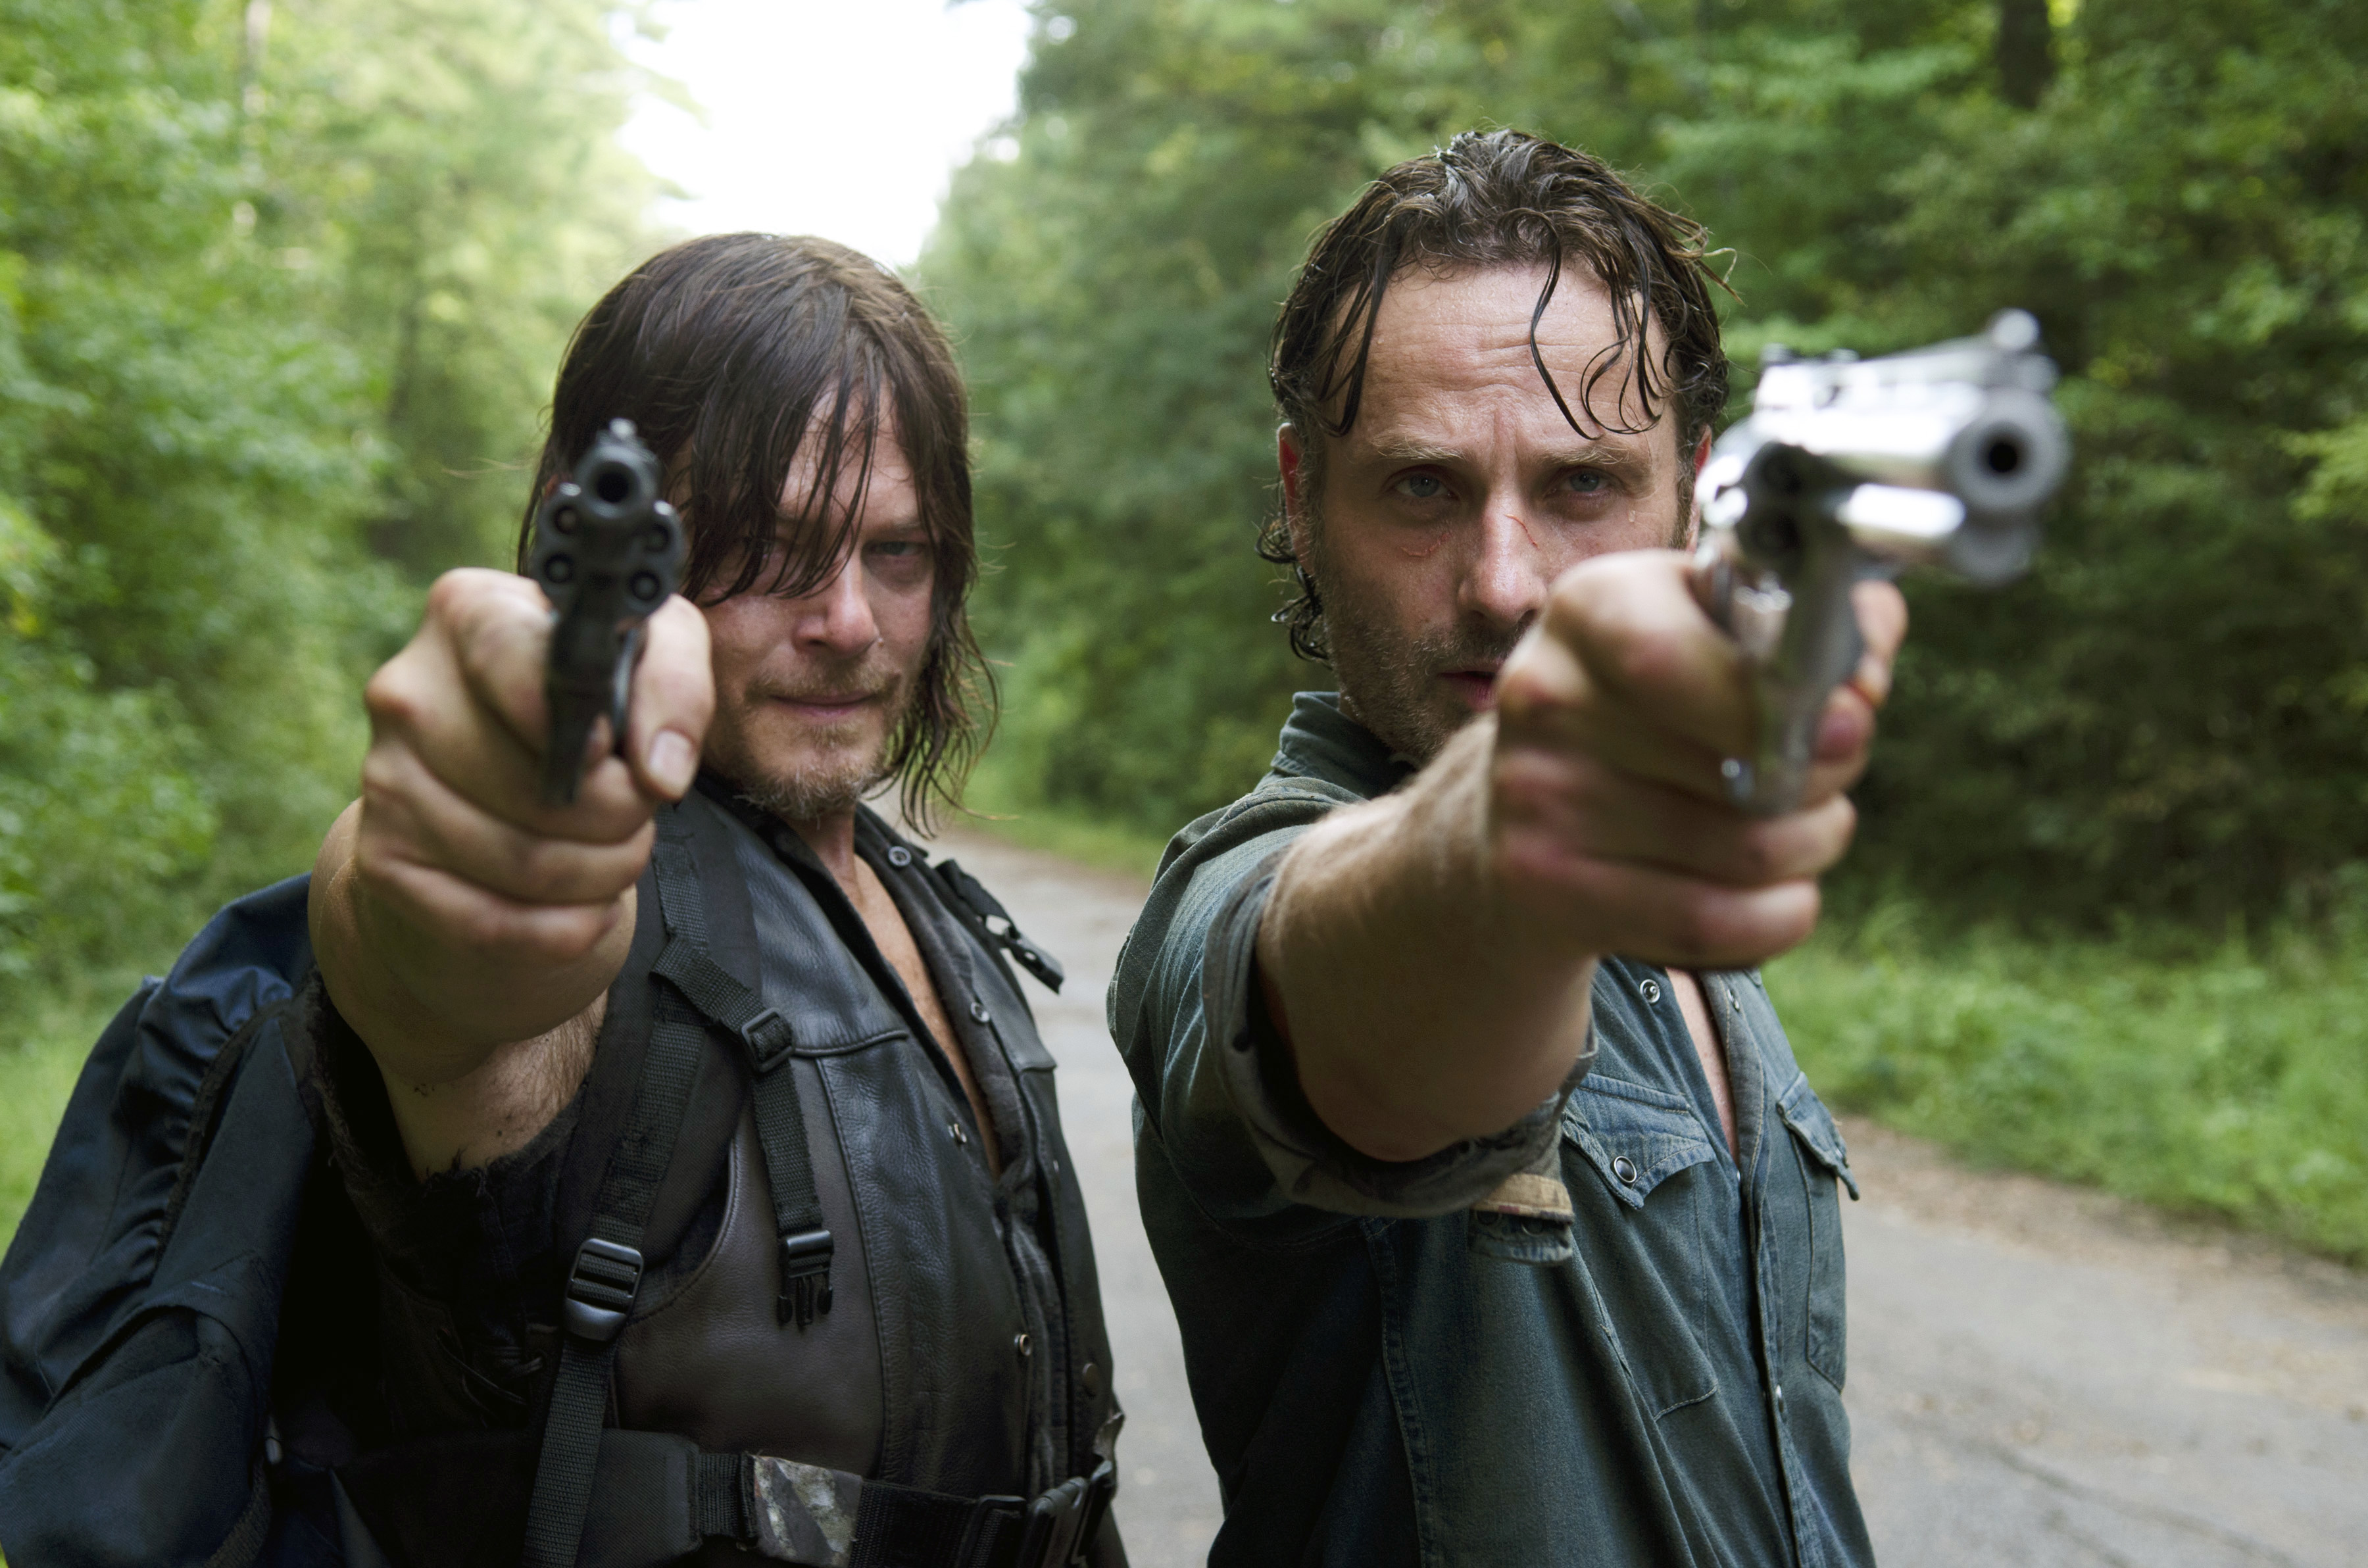 Andrew Lincoln as Rick Grimes and Norman Reedus as Daryl Dixon - The Walking Dead